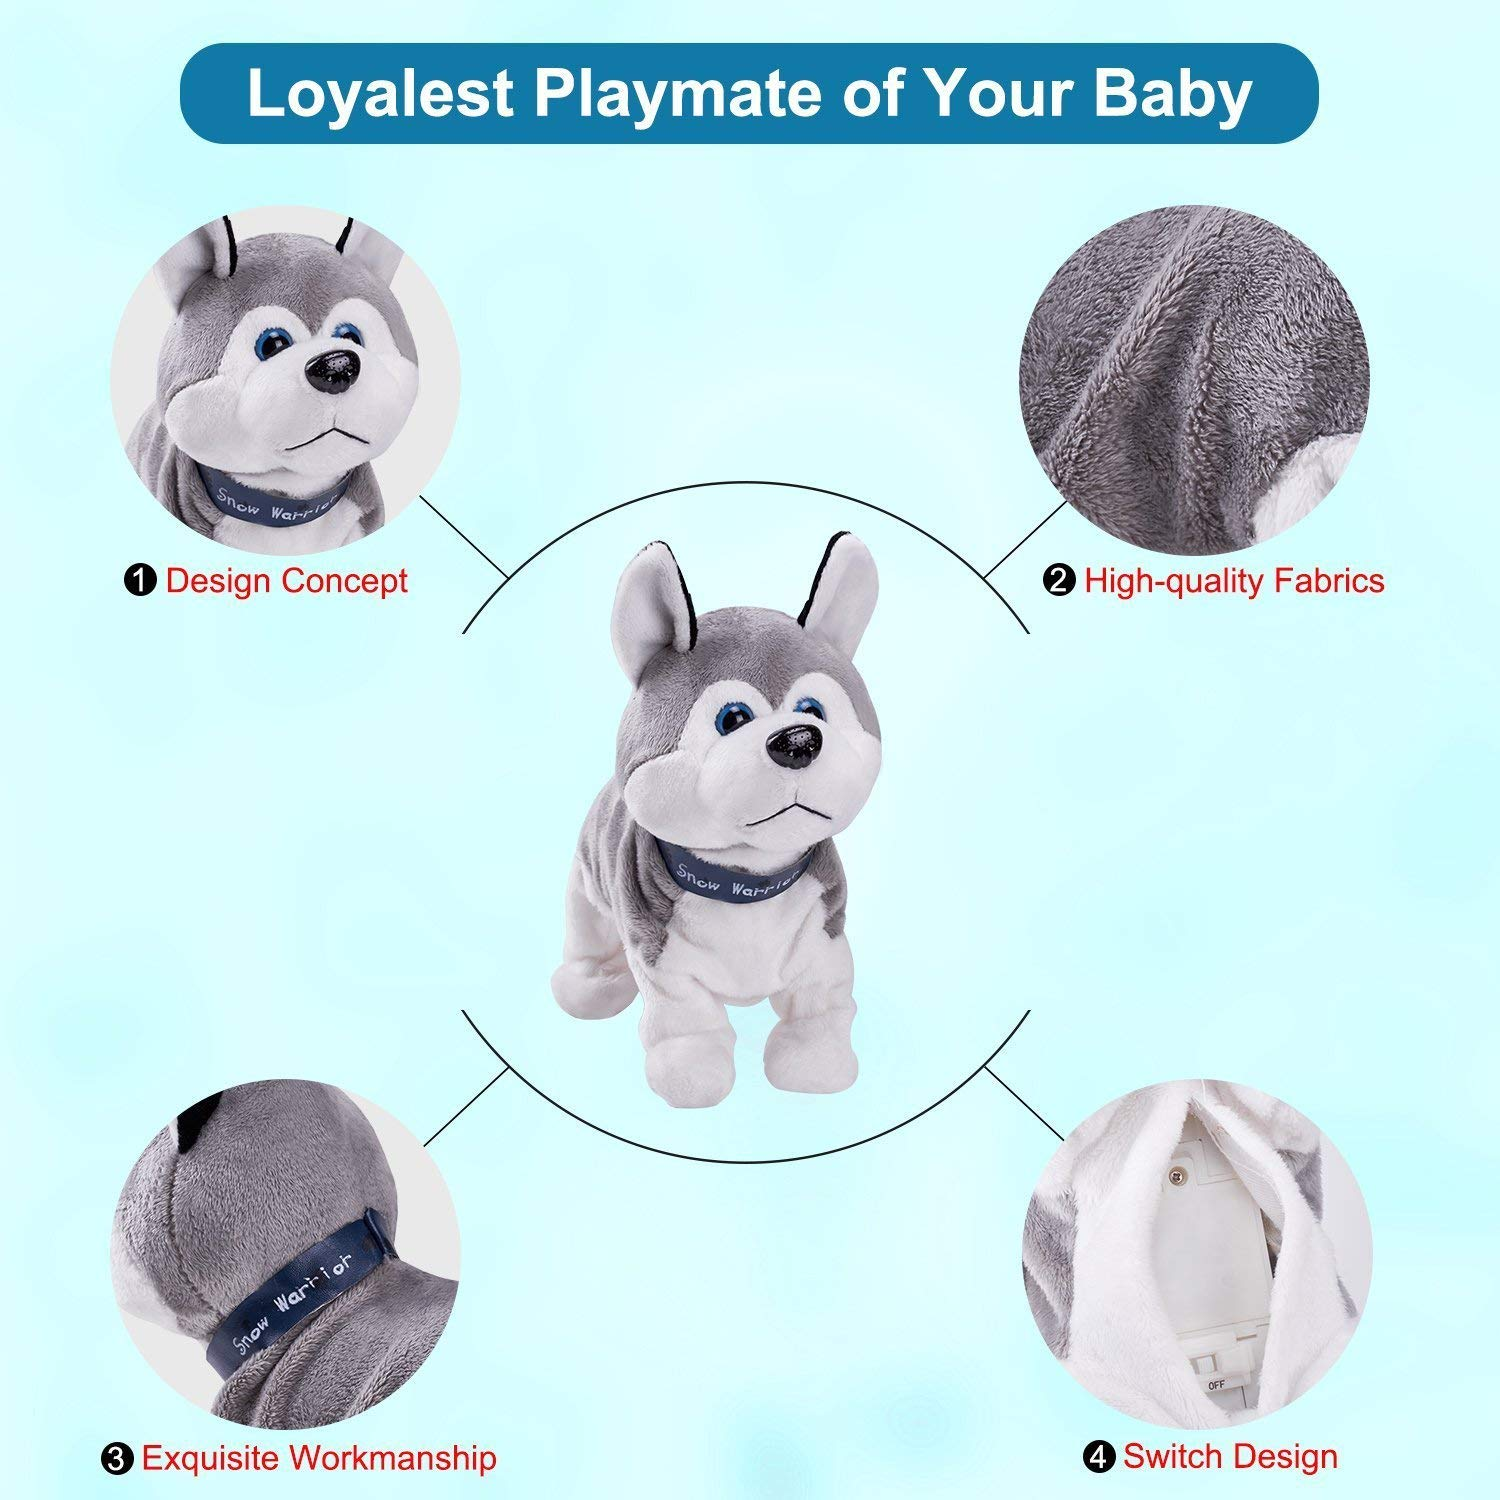 Interactive Puppy Plush Animated Pet Electronic Dog Cute Robot Dog Baby Toys Touch Control Plush Husky Stuffed Animal Dog Toy Toddler kids Girl Toys Tumbling, Clapping hands, Bowing Length 12'' by Marsjoy (Image #7)